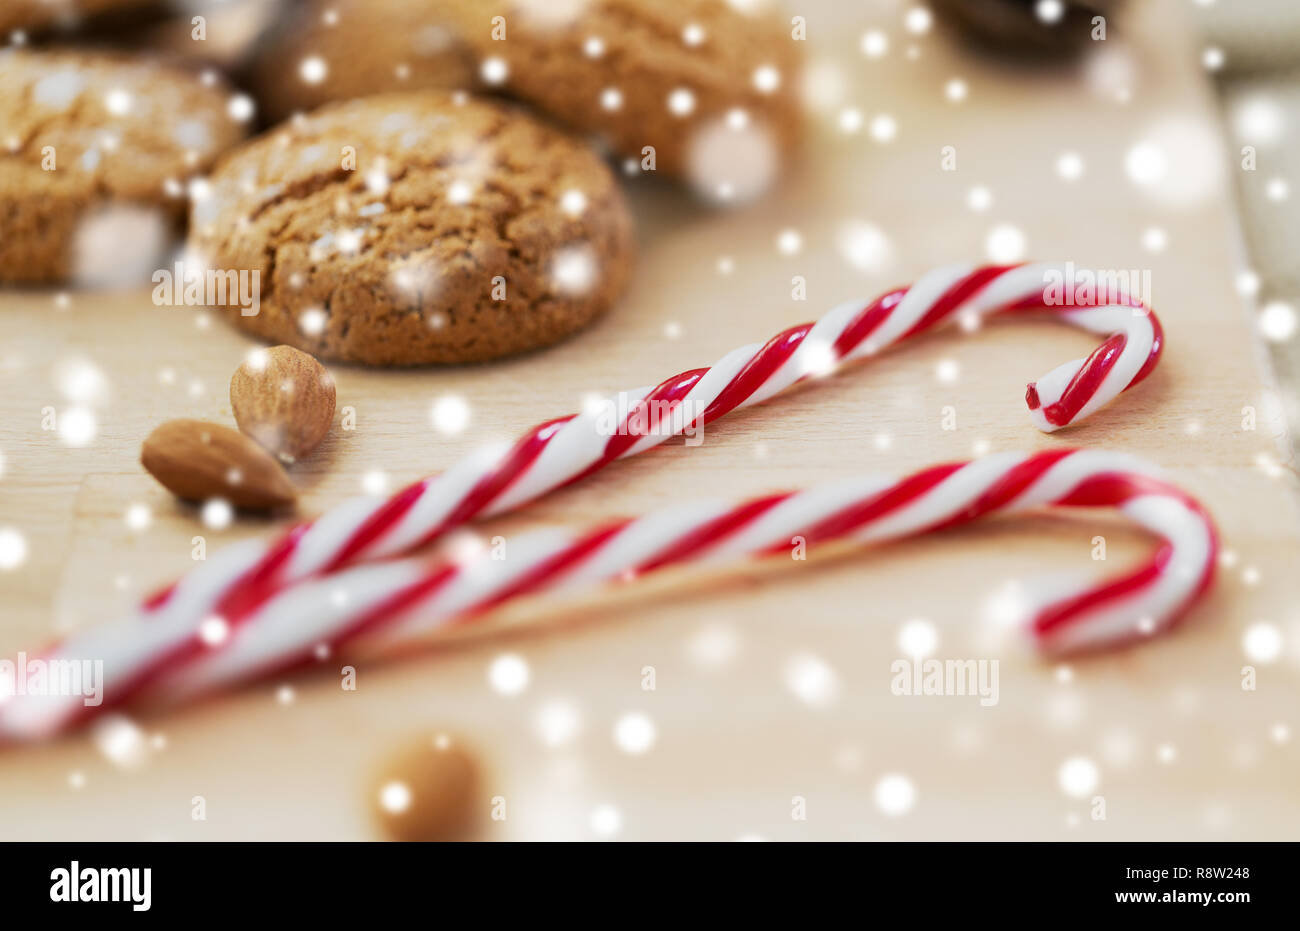 Candy Cane Cookie Stock Photos Candy Cane Cookie Stock Images Alamy